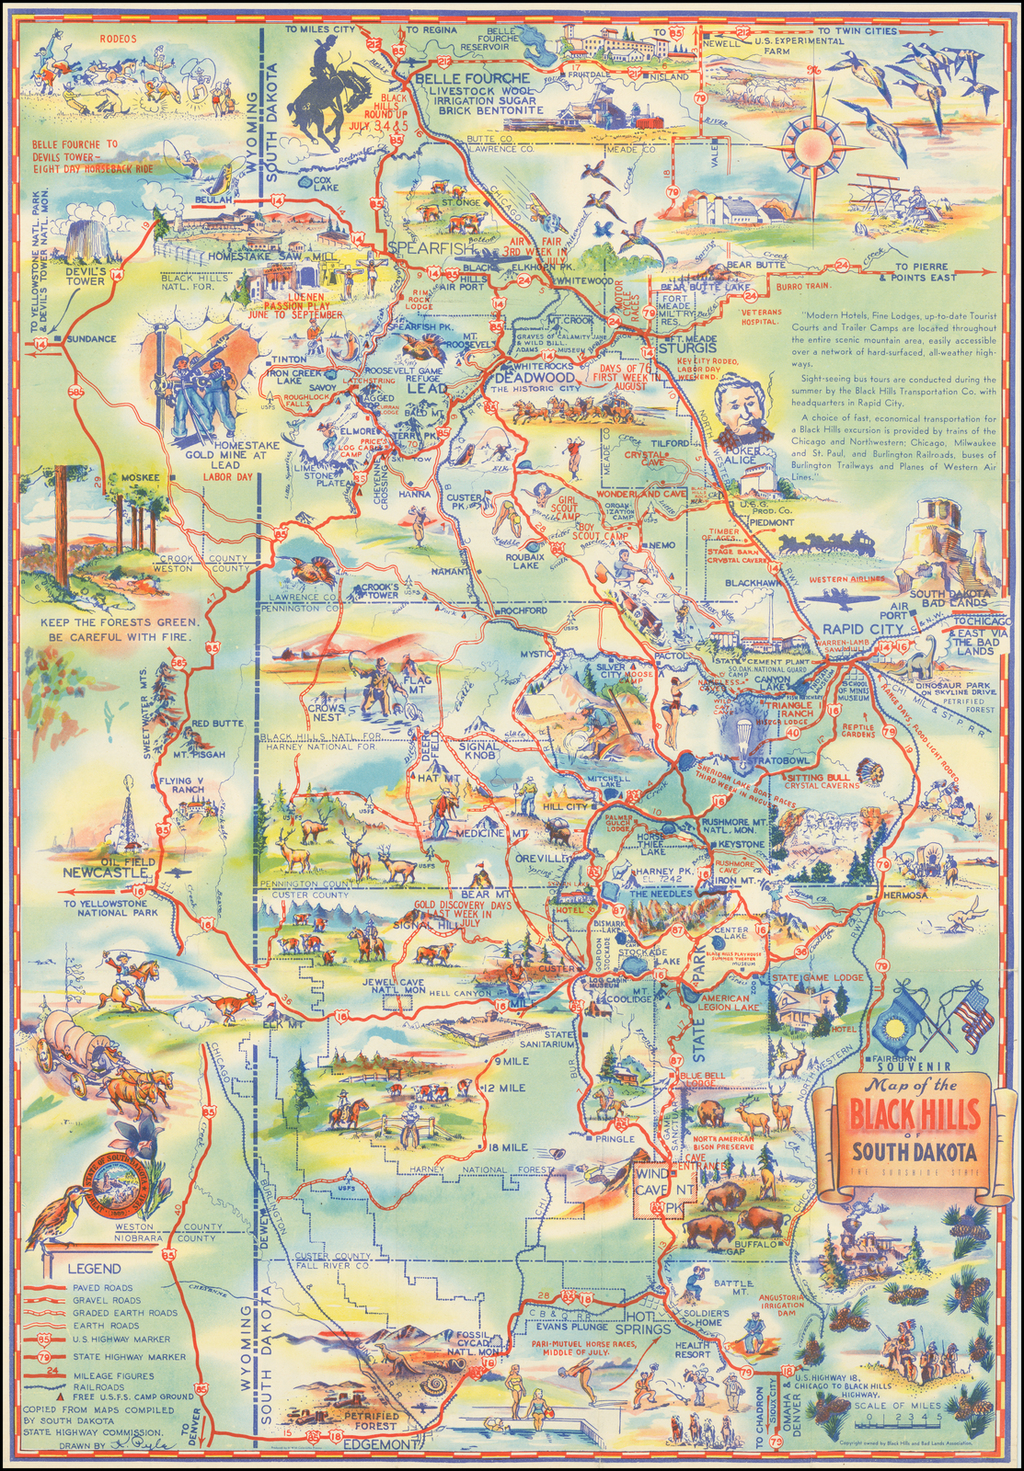 Map of the Black Hills of South Dakota The Sunshine State By K. Pyle